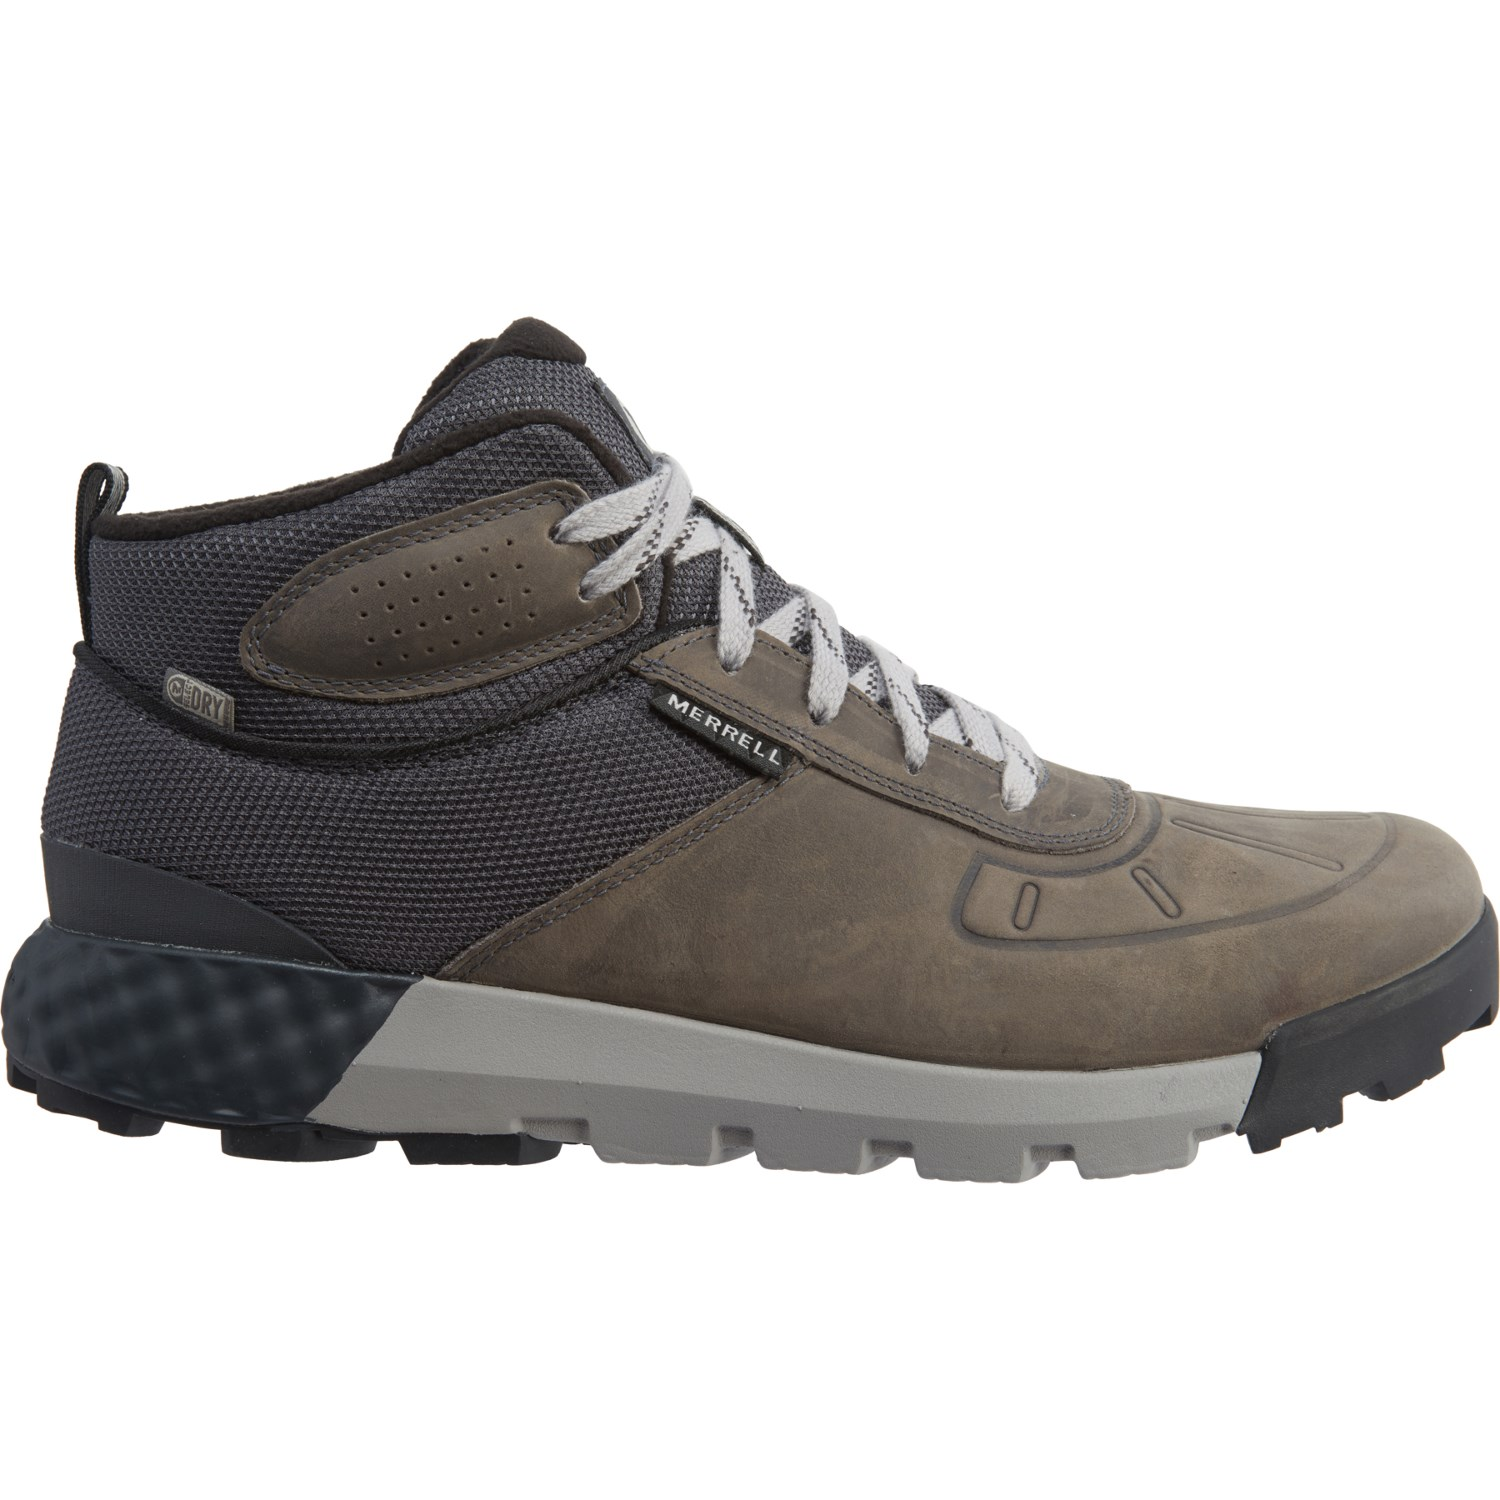 Merrell Convoy Mid Polar AC+ Winter Boots Waterproof, Insulated (For Men)